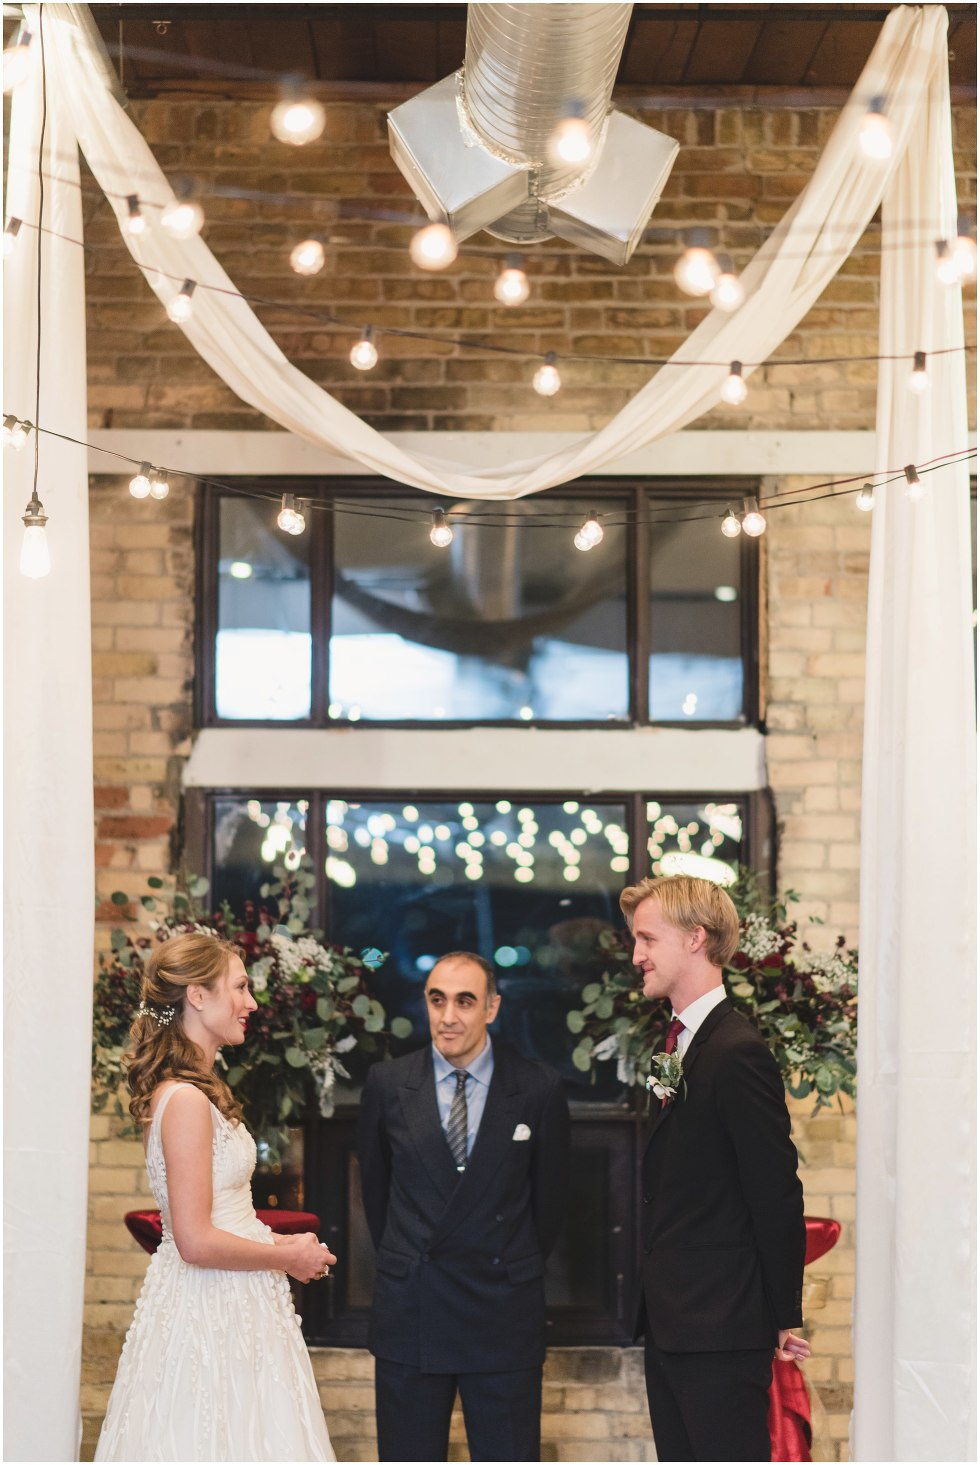 Burroughs wedding photos, Toronto wedding photographer